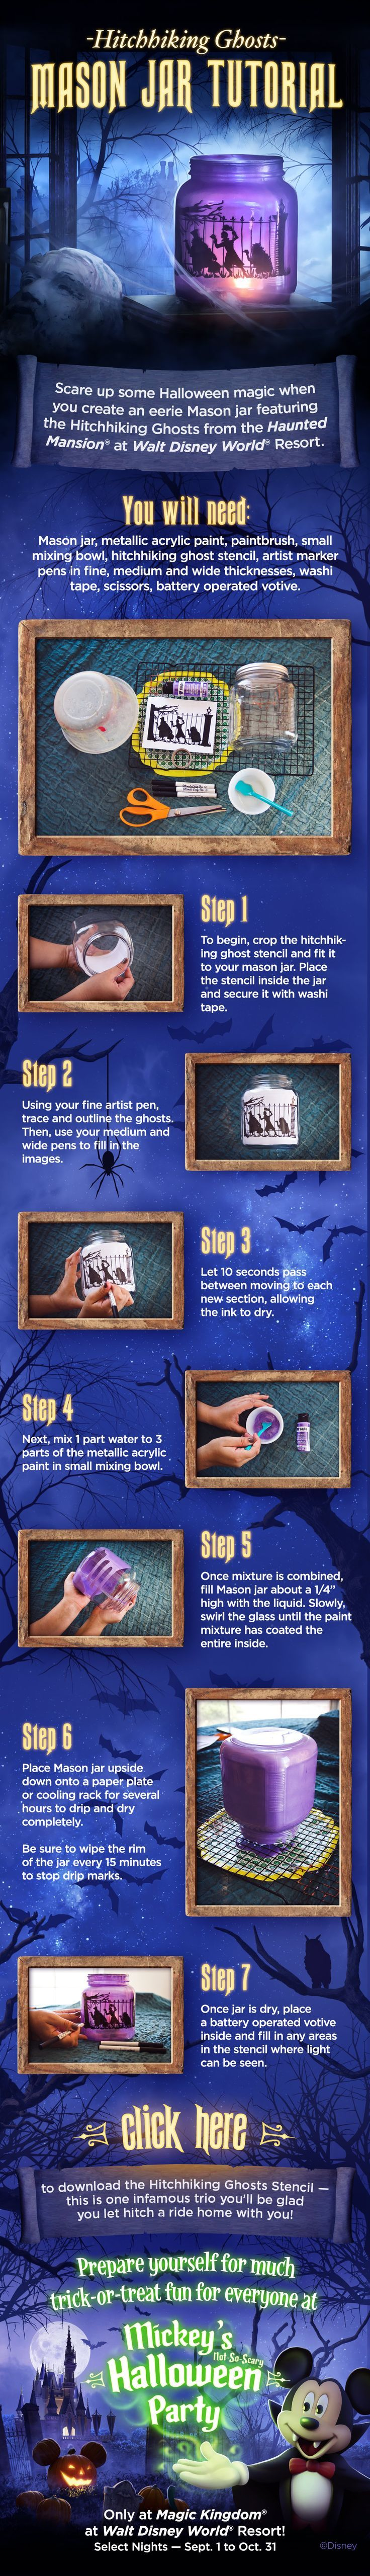 Best 20+ Haunted mansion halloween ideas on Pinterest